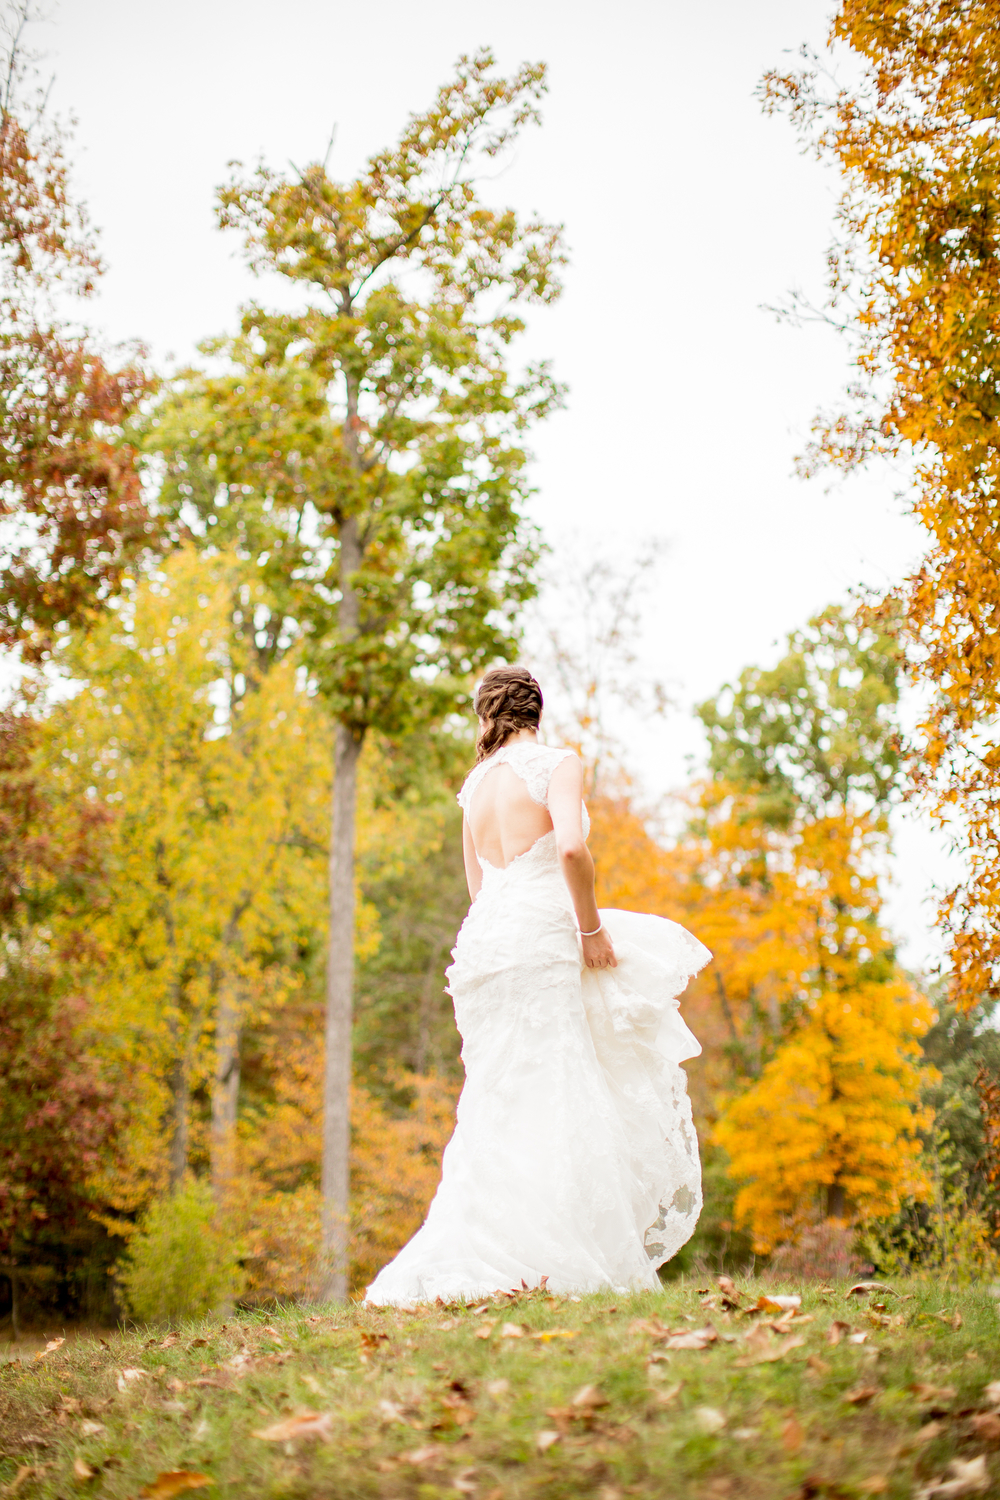 Caroline + Jacob on October 19, 2013 ♥ Sam Dean Photography at Westfields Golf Club (Clifton, VA)